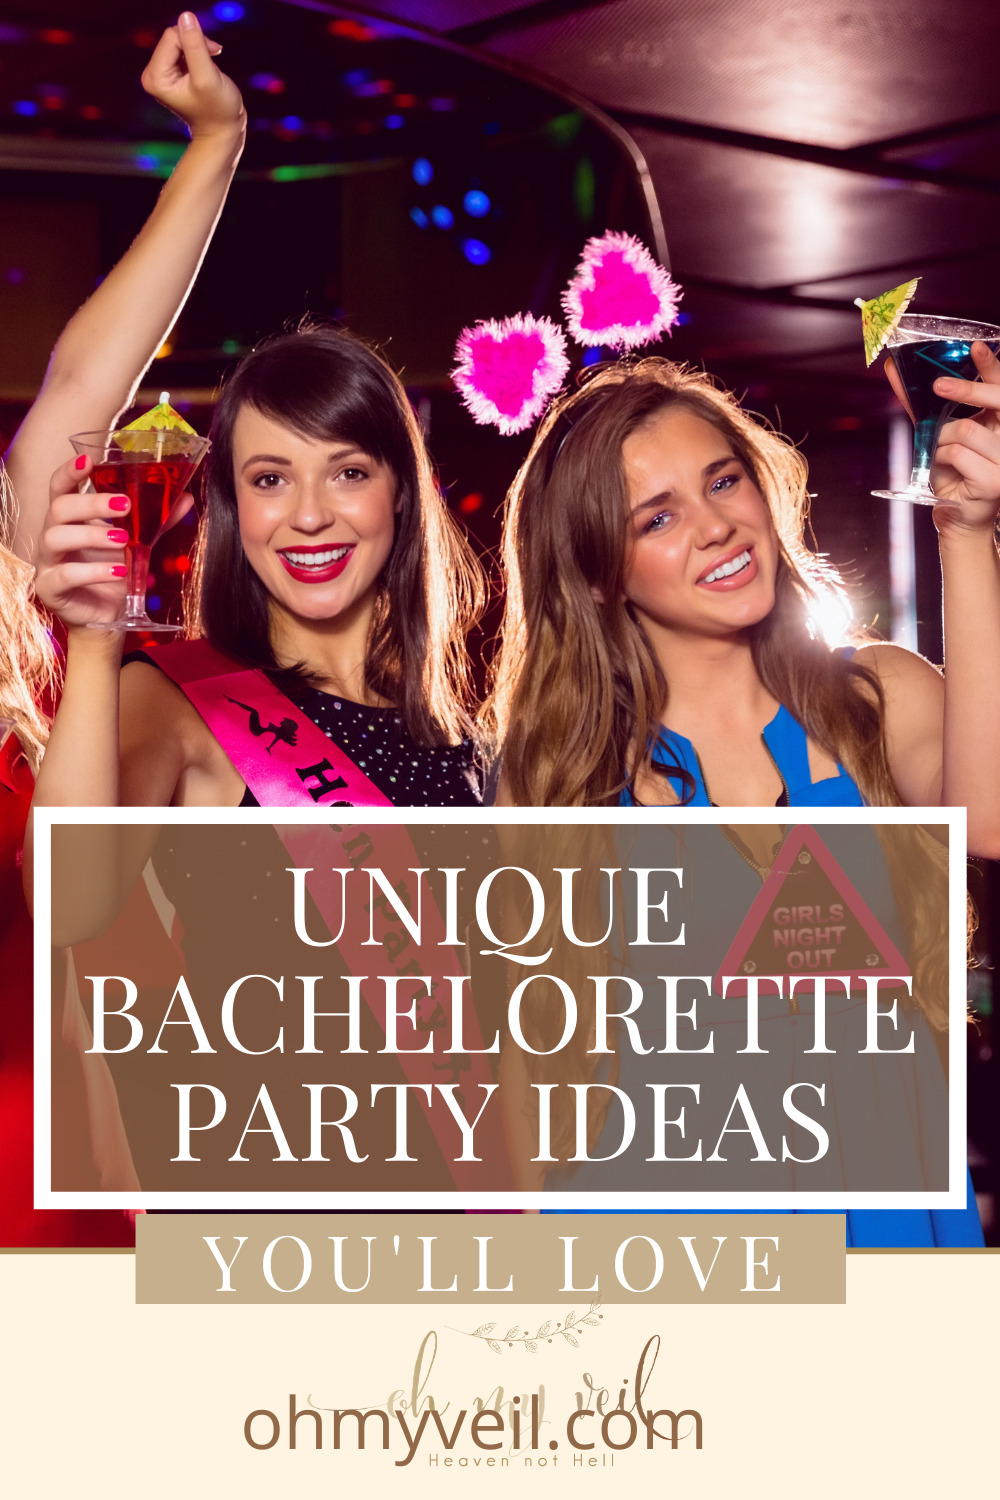 Ohmyveil.com is your new best friend when it comes to wedding planning and inspiration! Find inspiration for every detail of your big day! Get together with your closest friends and try out these fun ideas for your bachelorette party!